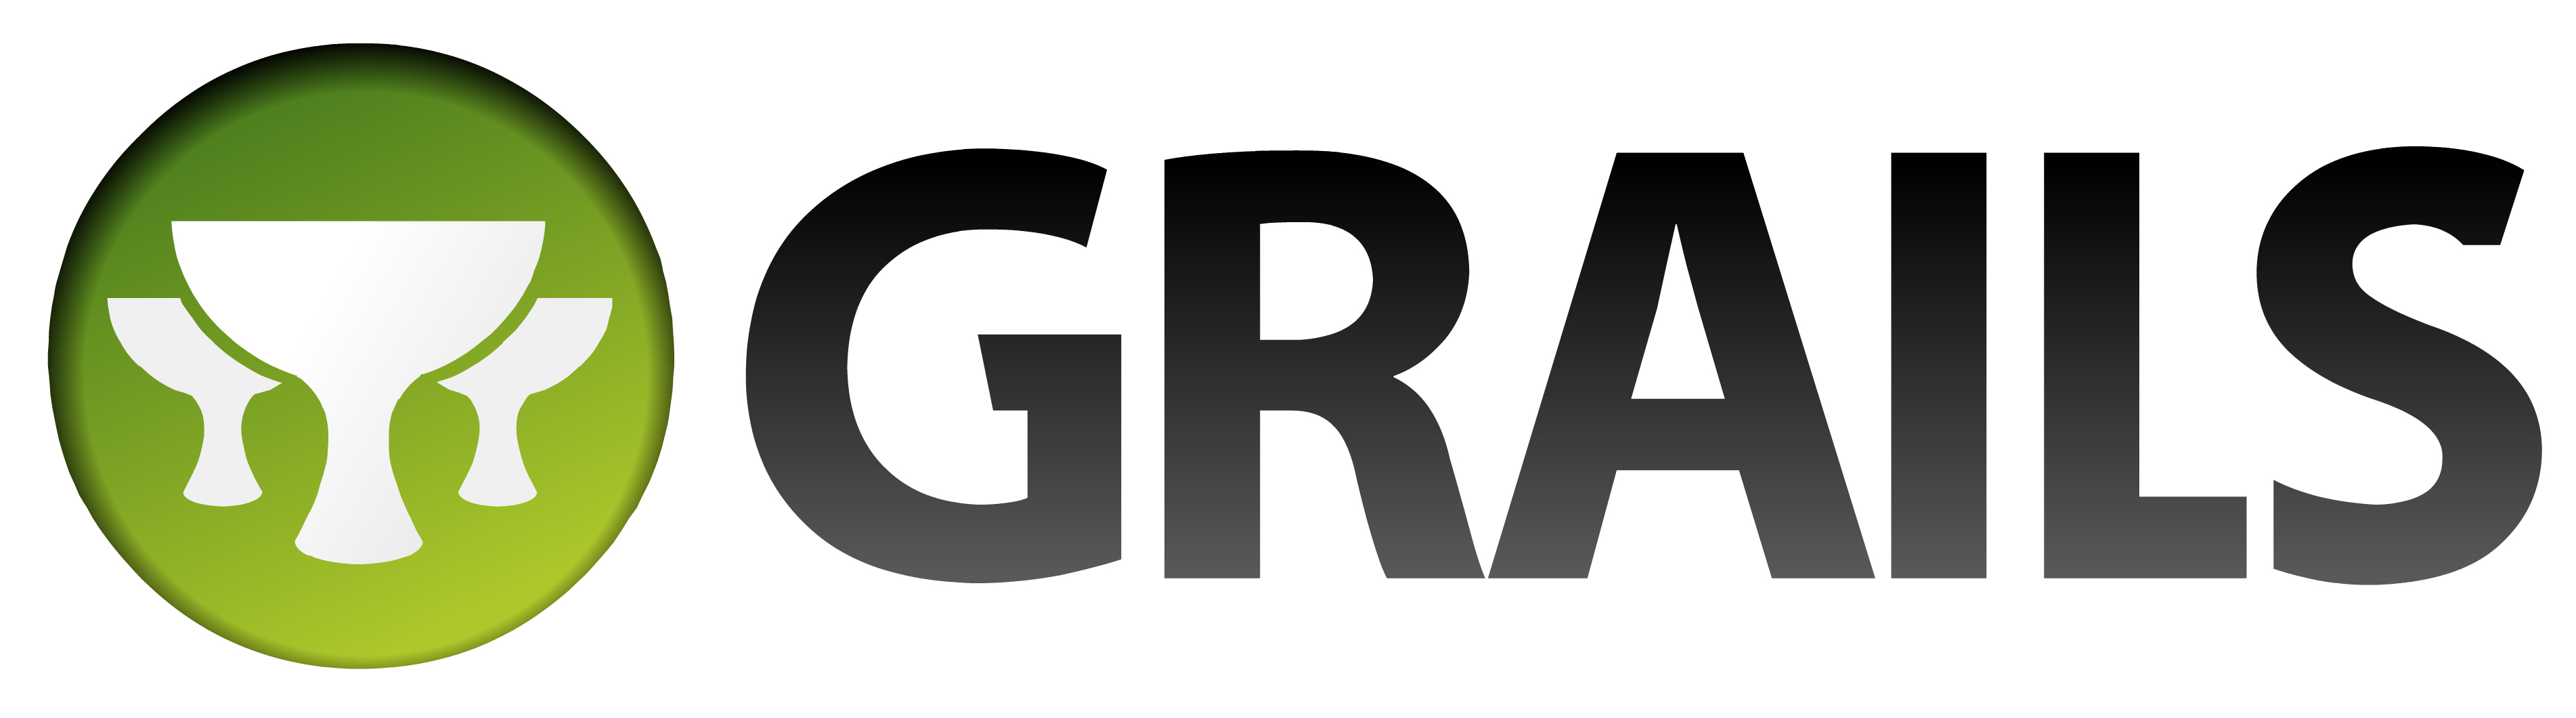 https://upload.wikimedia.org/wikipedia/de/5/56/Grails_logo_2009_2010.jpg